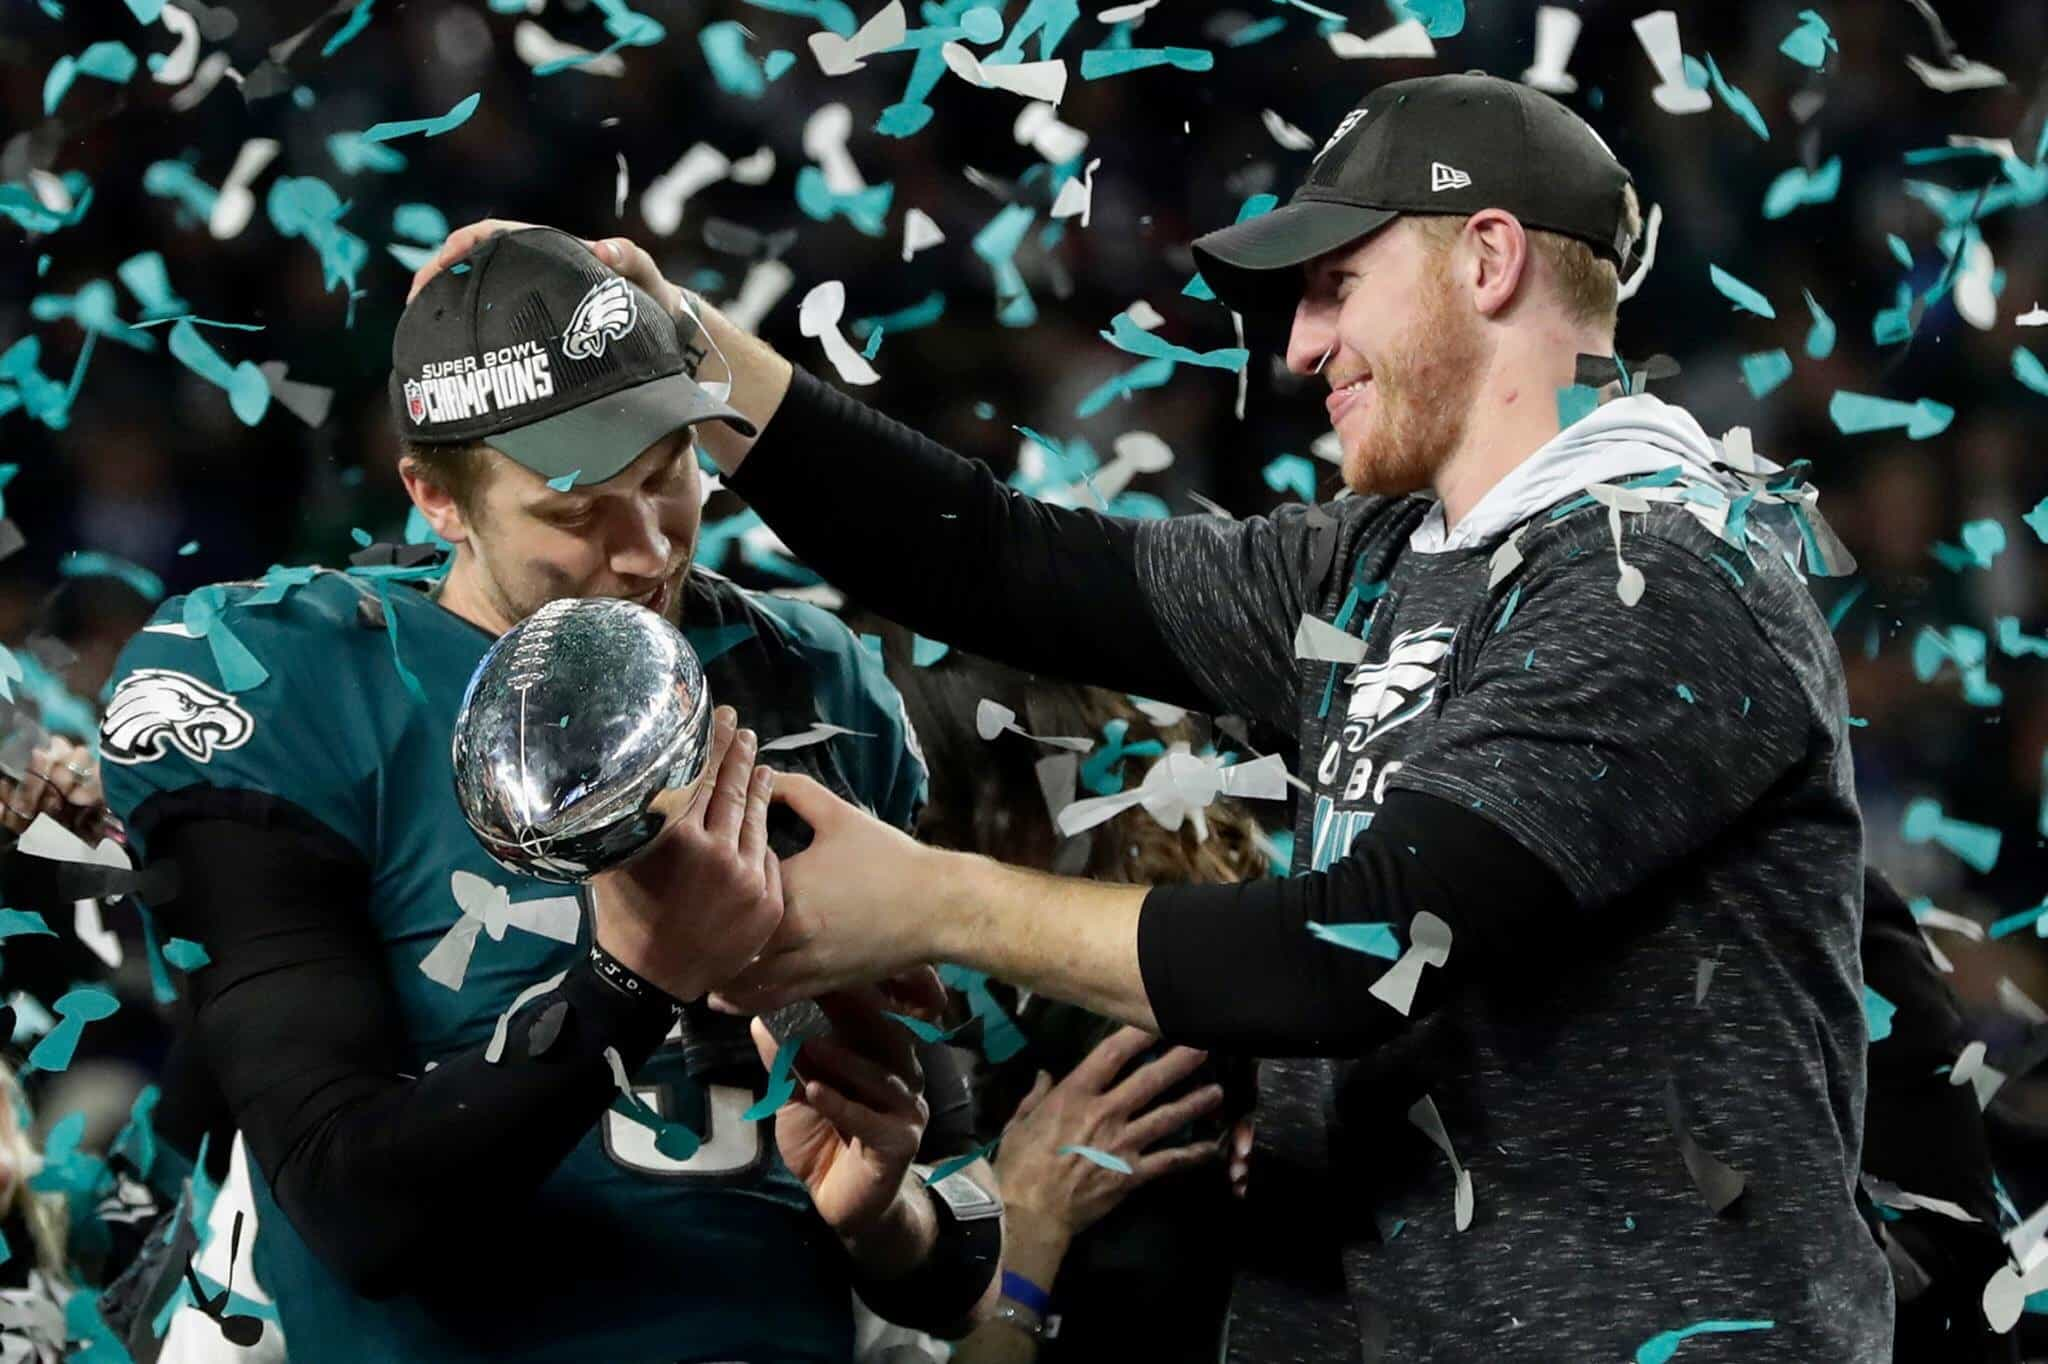 FILE - In this Sunday, Feb. 4, 2018, file photo, Philadelphia Eagles quarterback Carson Wentz, right, hands the Vincent Lombardi trophy to Nick Foles after winning the NFL Super Bowl 52 football game against the New England Patriots in Minneapolis. The Eagles aren't just celebrating their first championship since 1960 but also an abundance of talent at the position in franchise QB Carson Wentz and Super Bowl MVP Nick Foles. Should Wentz's recovery go well, the Eagles will have a huge bargaining chip to restock their roster. (AP Photo/Frank Franklin II, FIle)